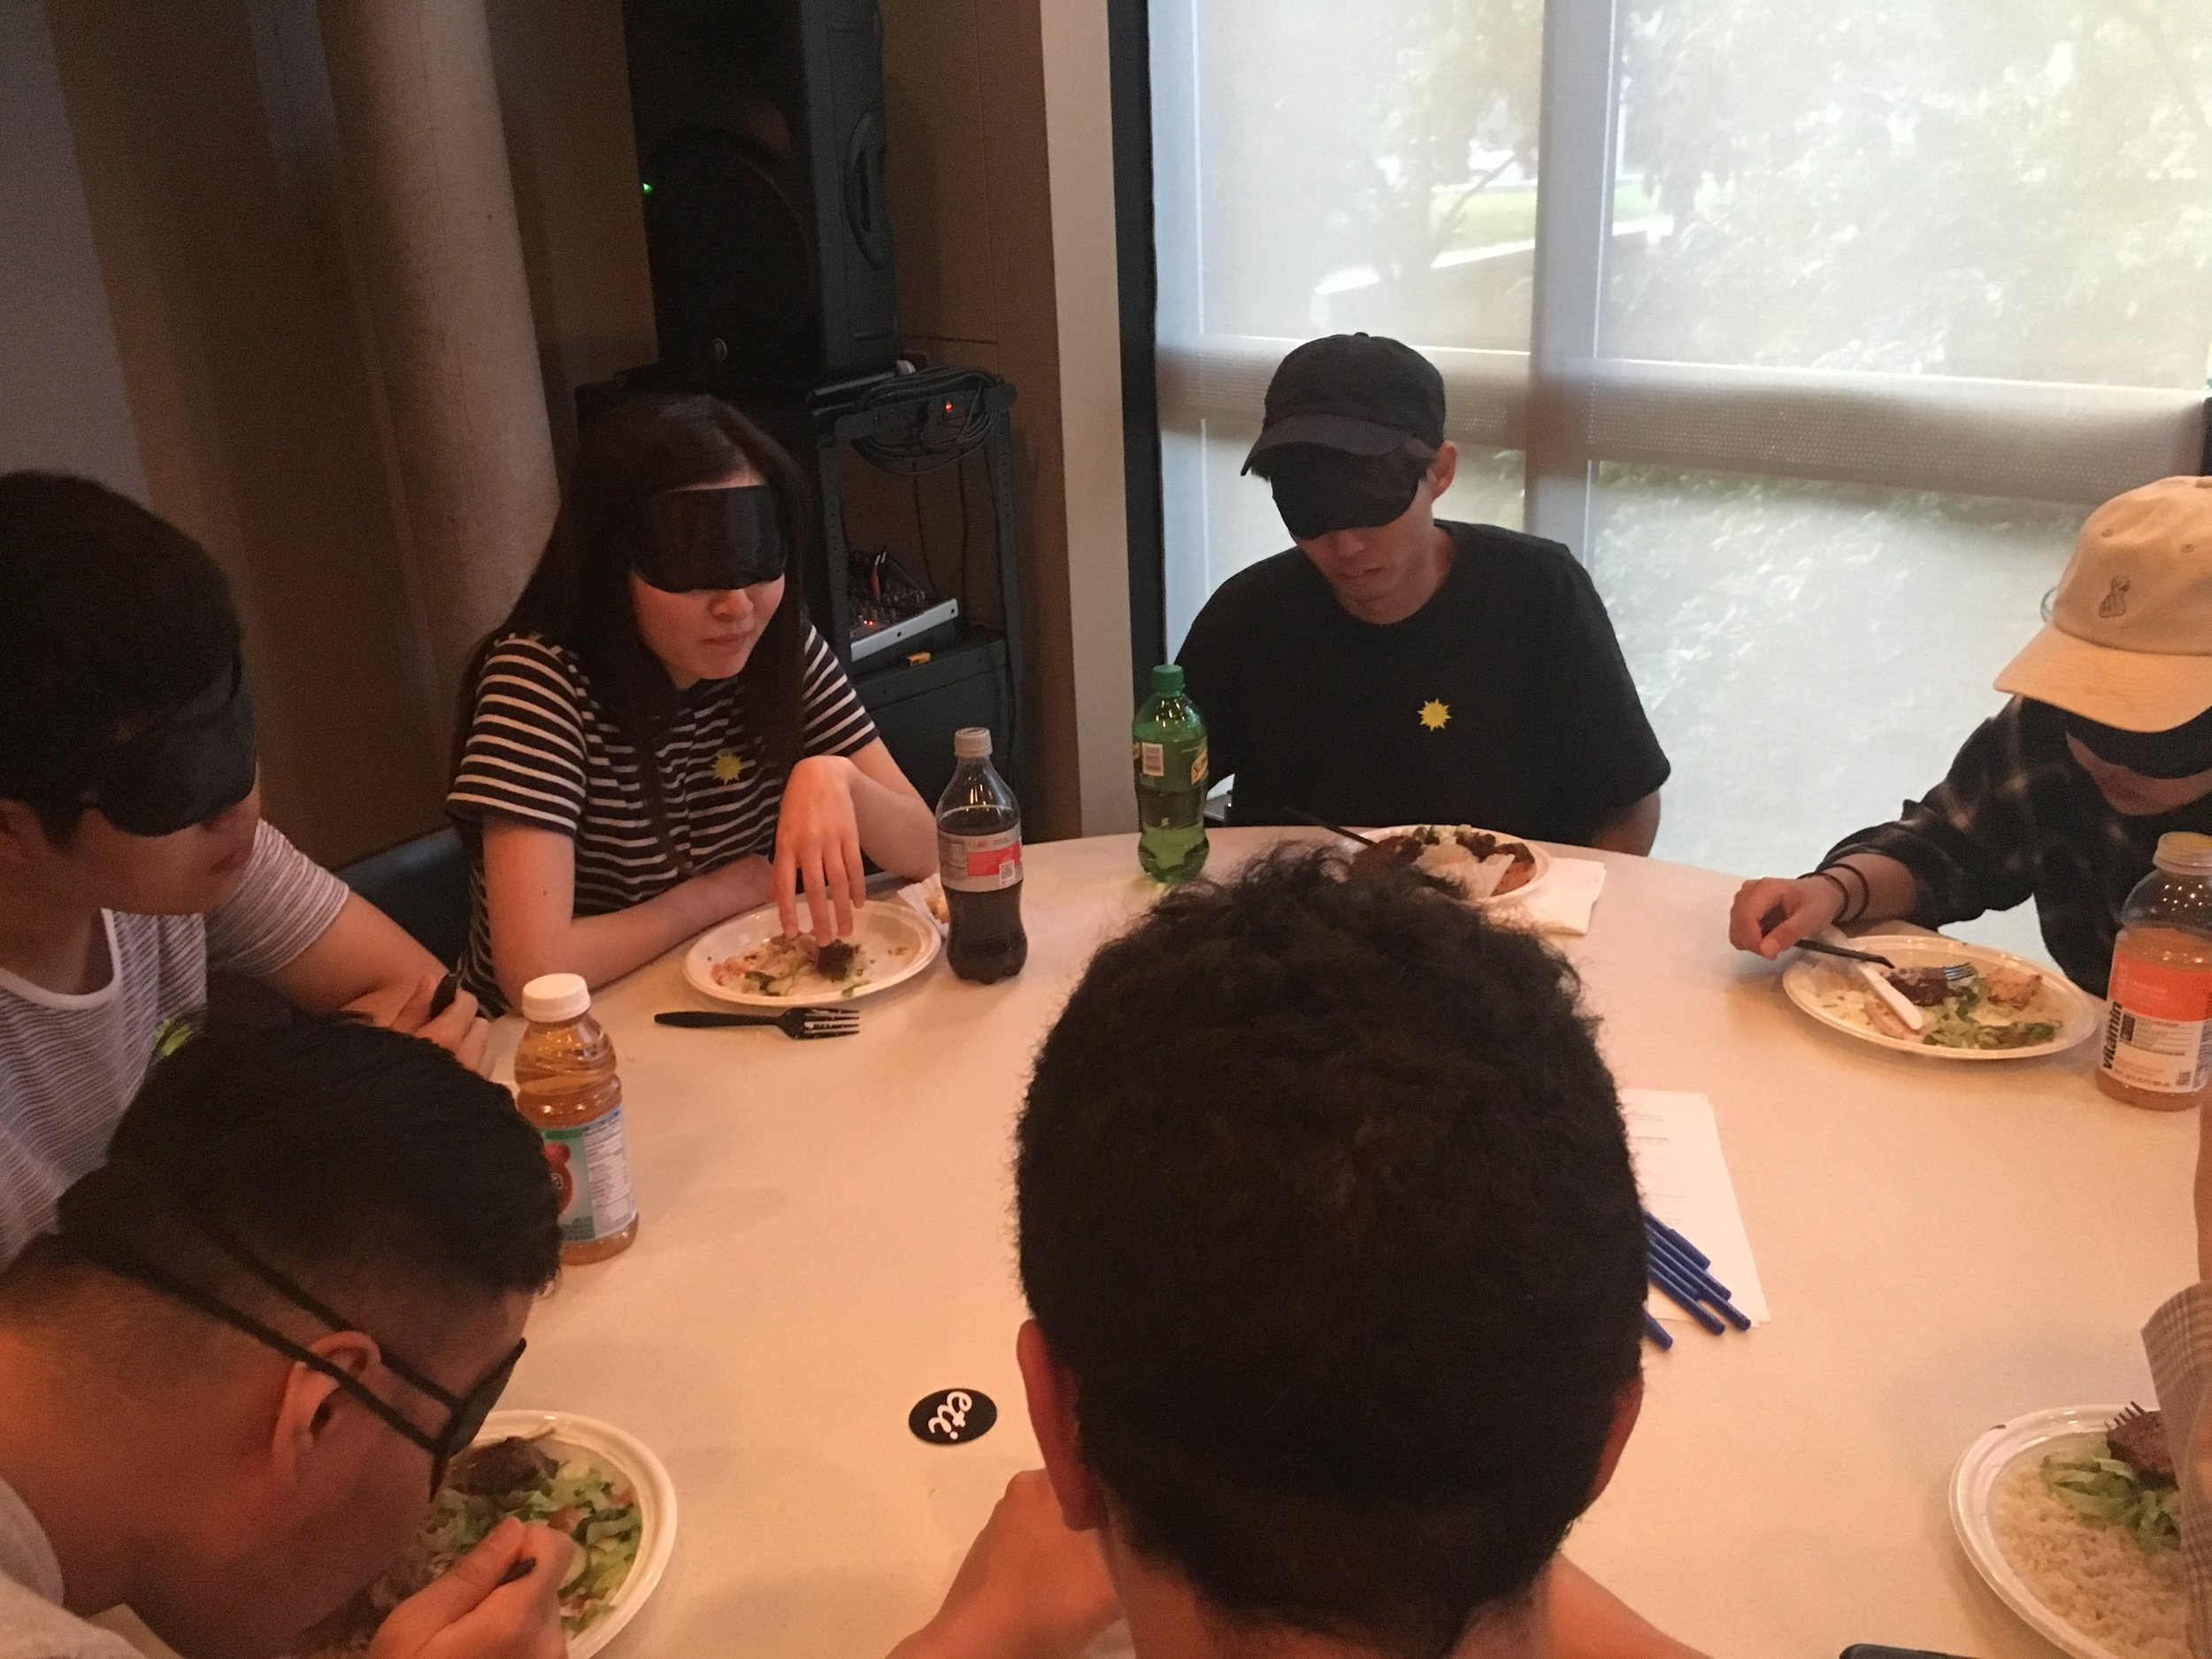 A blindfolded participant gestures with her hand as she makes a comment to the six other people sitting at her table.